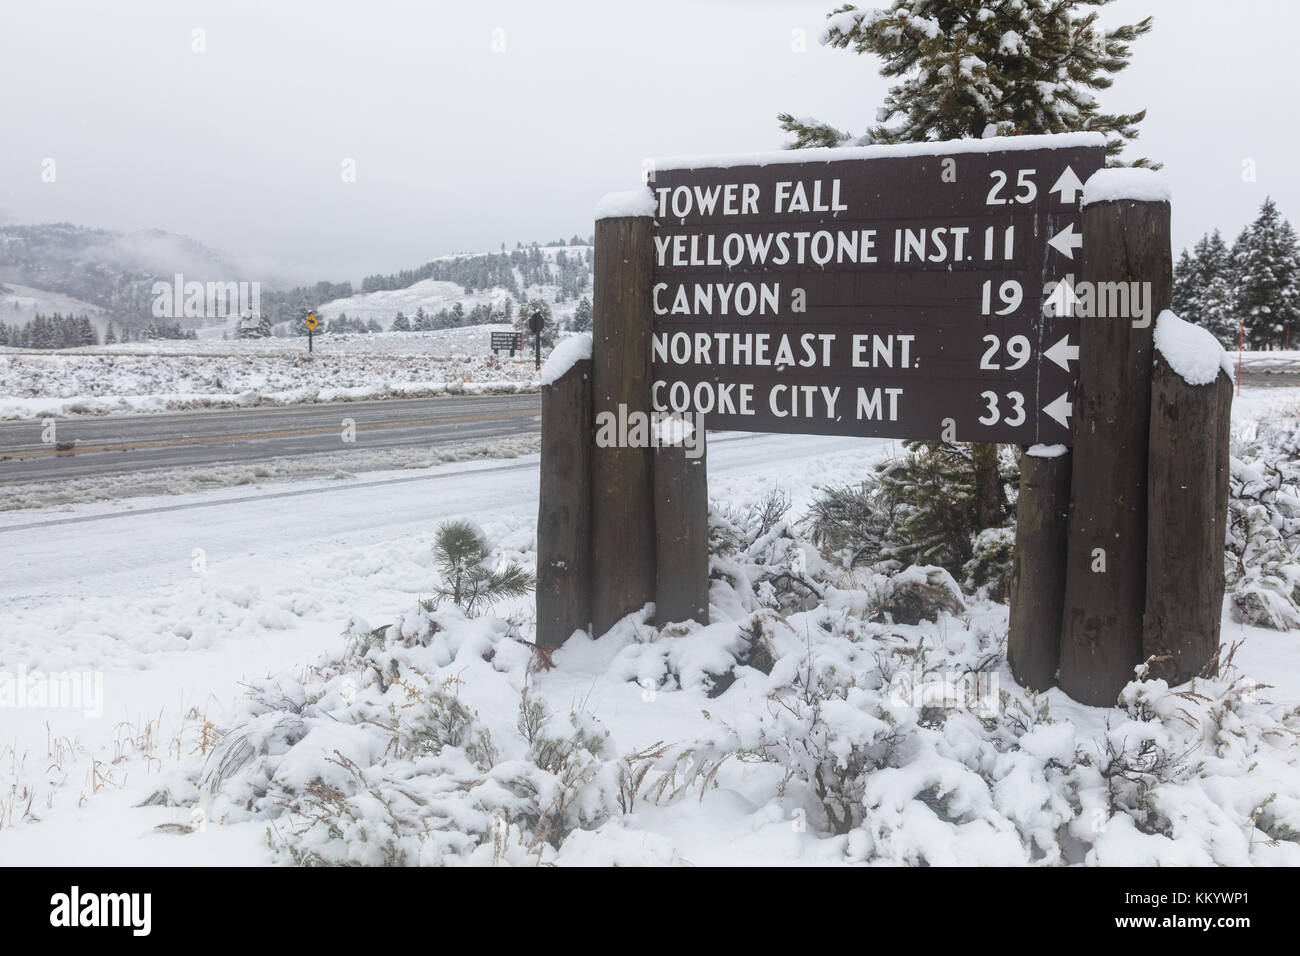 Snow Covers The Tower Roosevelt Area Welcome Sign At The Yellowstone Stock Photo Alamy